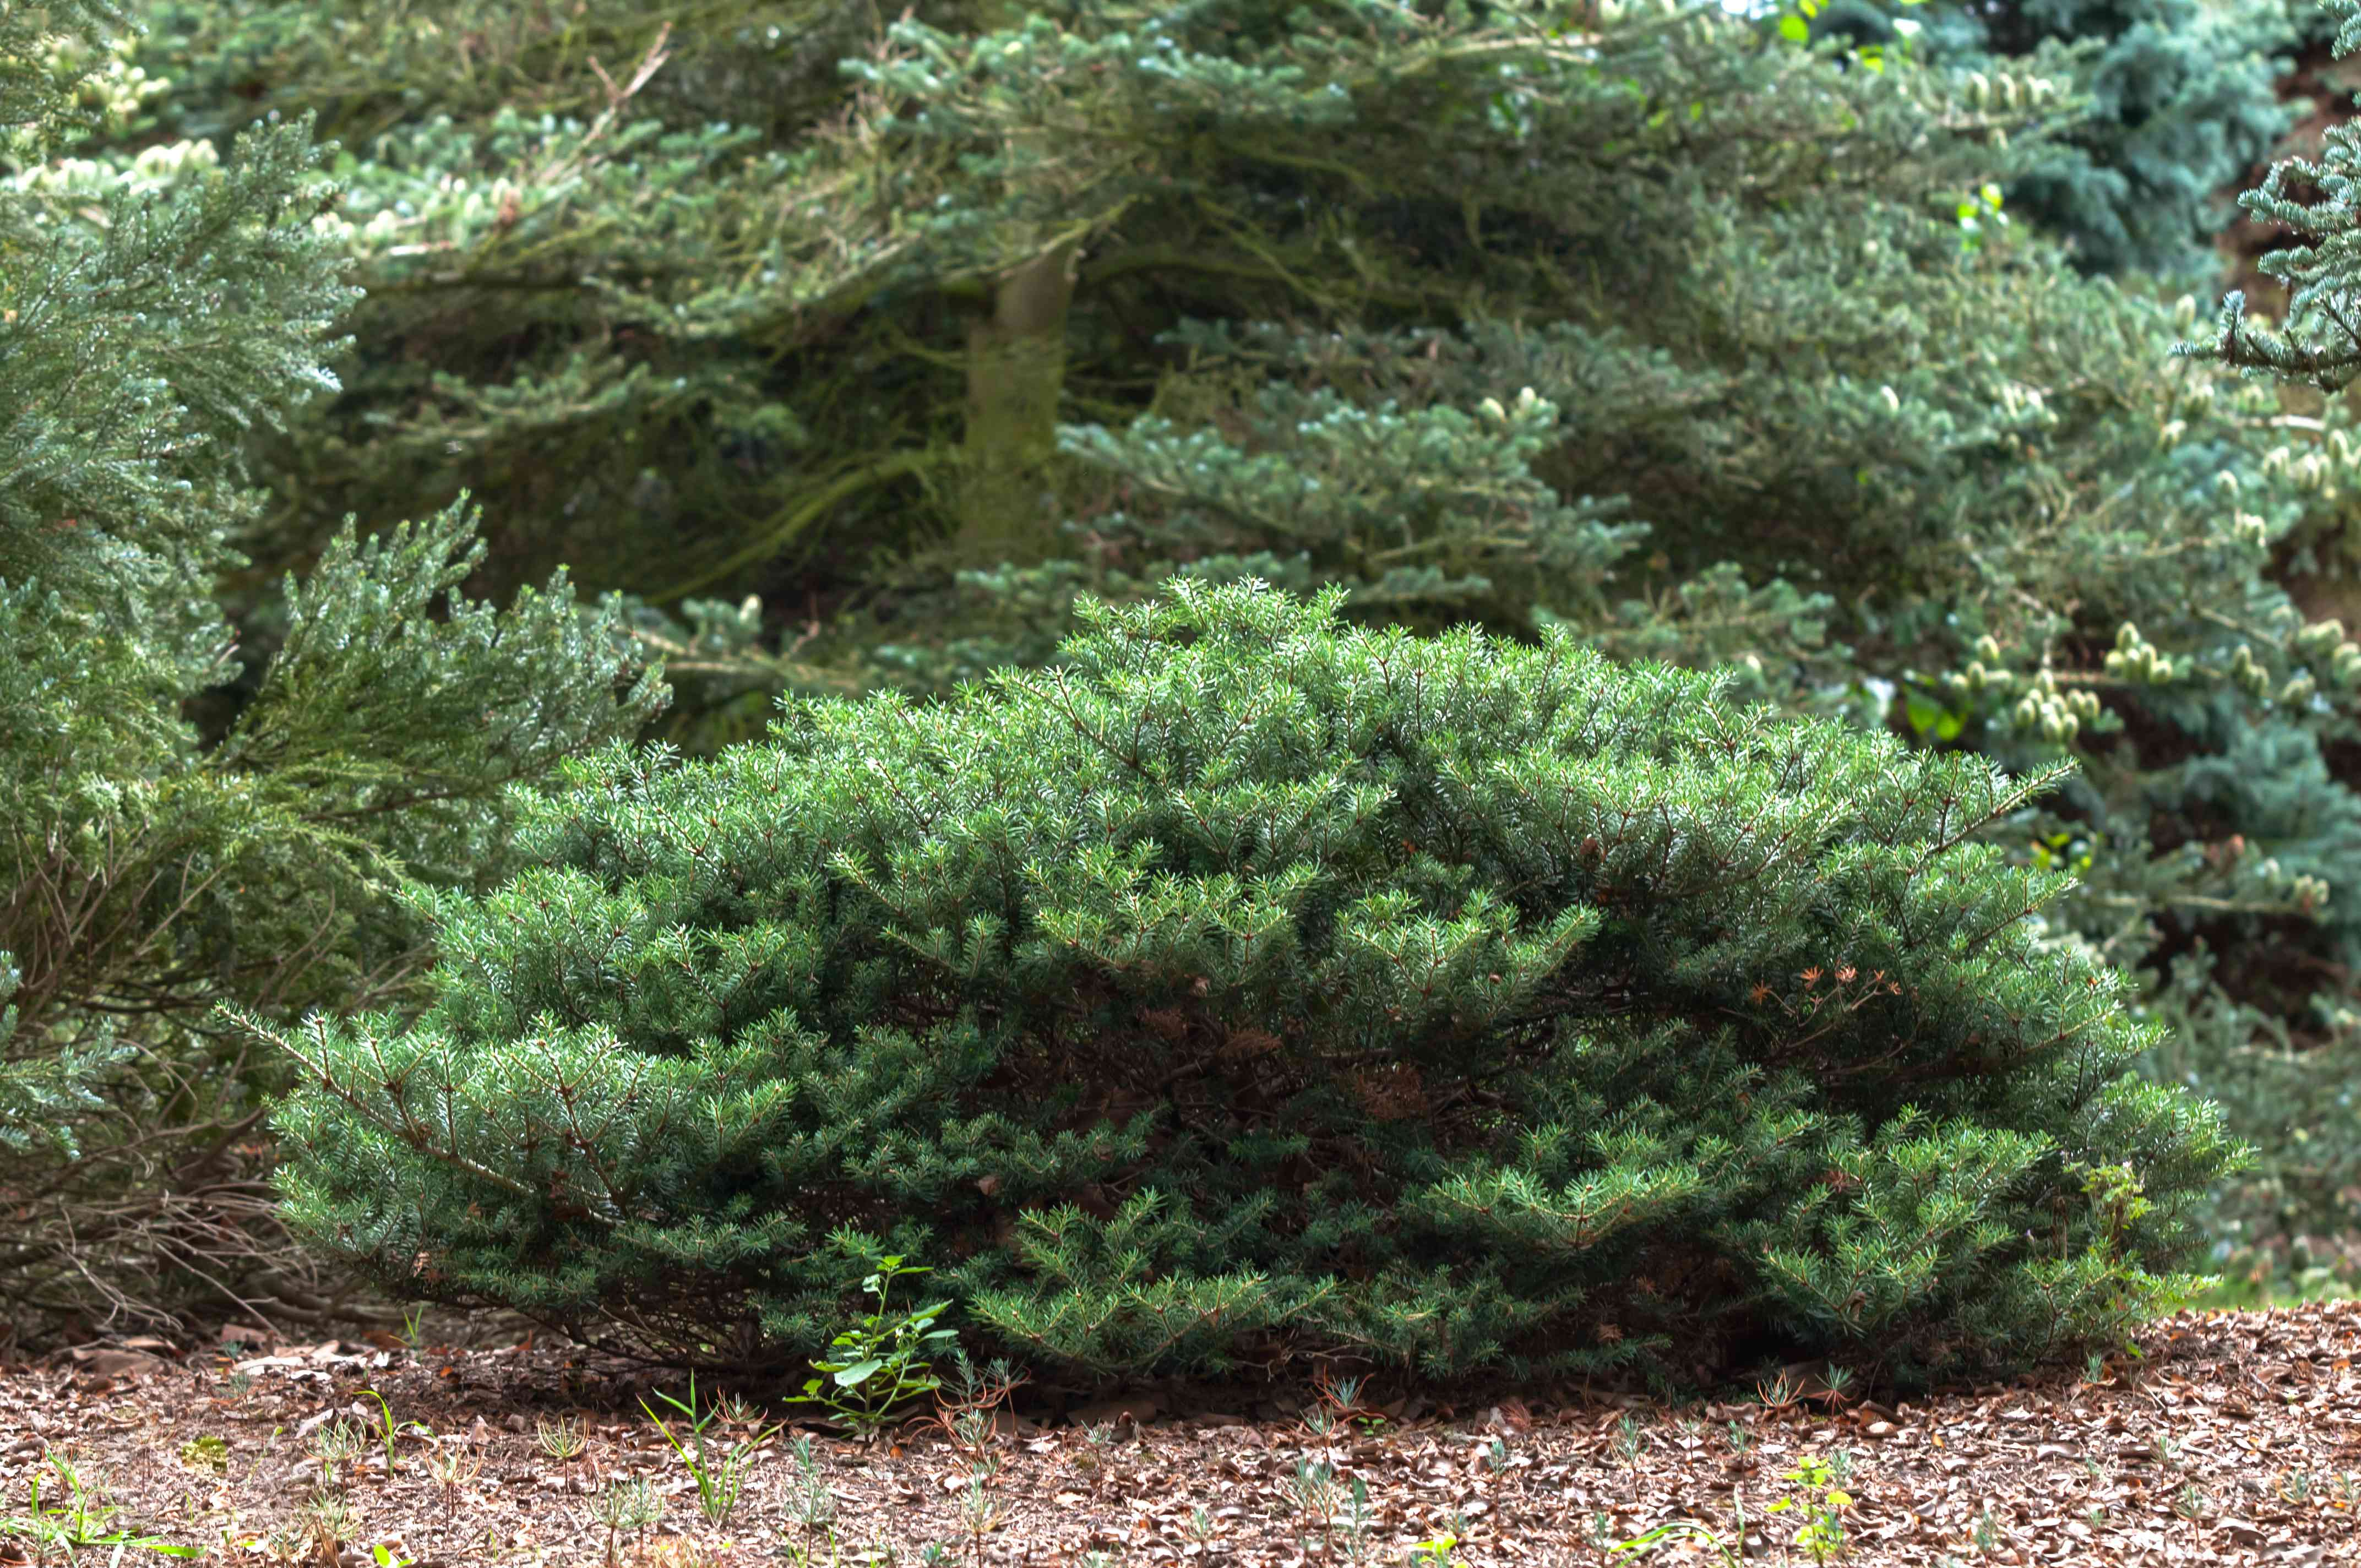 Korean fir with horizontal branches with dense needles in front of other trees